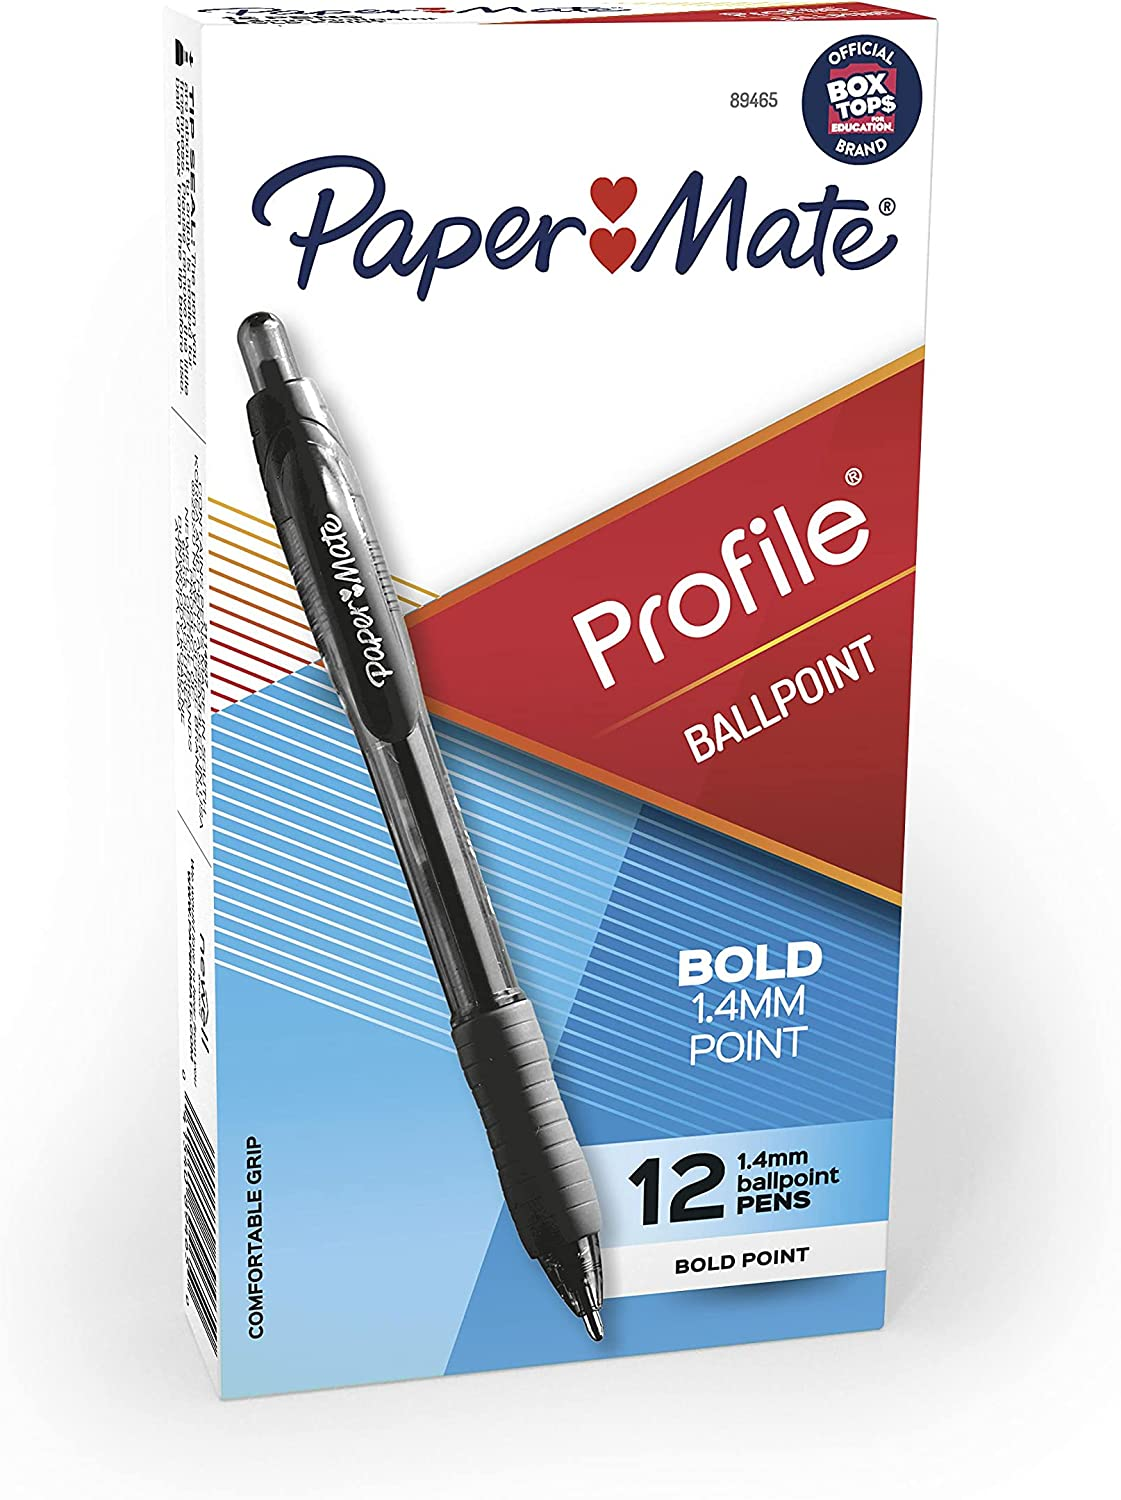 Paper Mate 89465 Profile Retractable Ballpoint Pens, Bold (1.4mm), Black, 12 Count (Package May Vary) : Rollerball Pens : Office Products